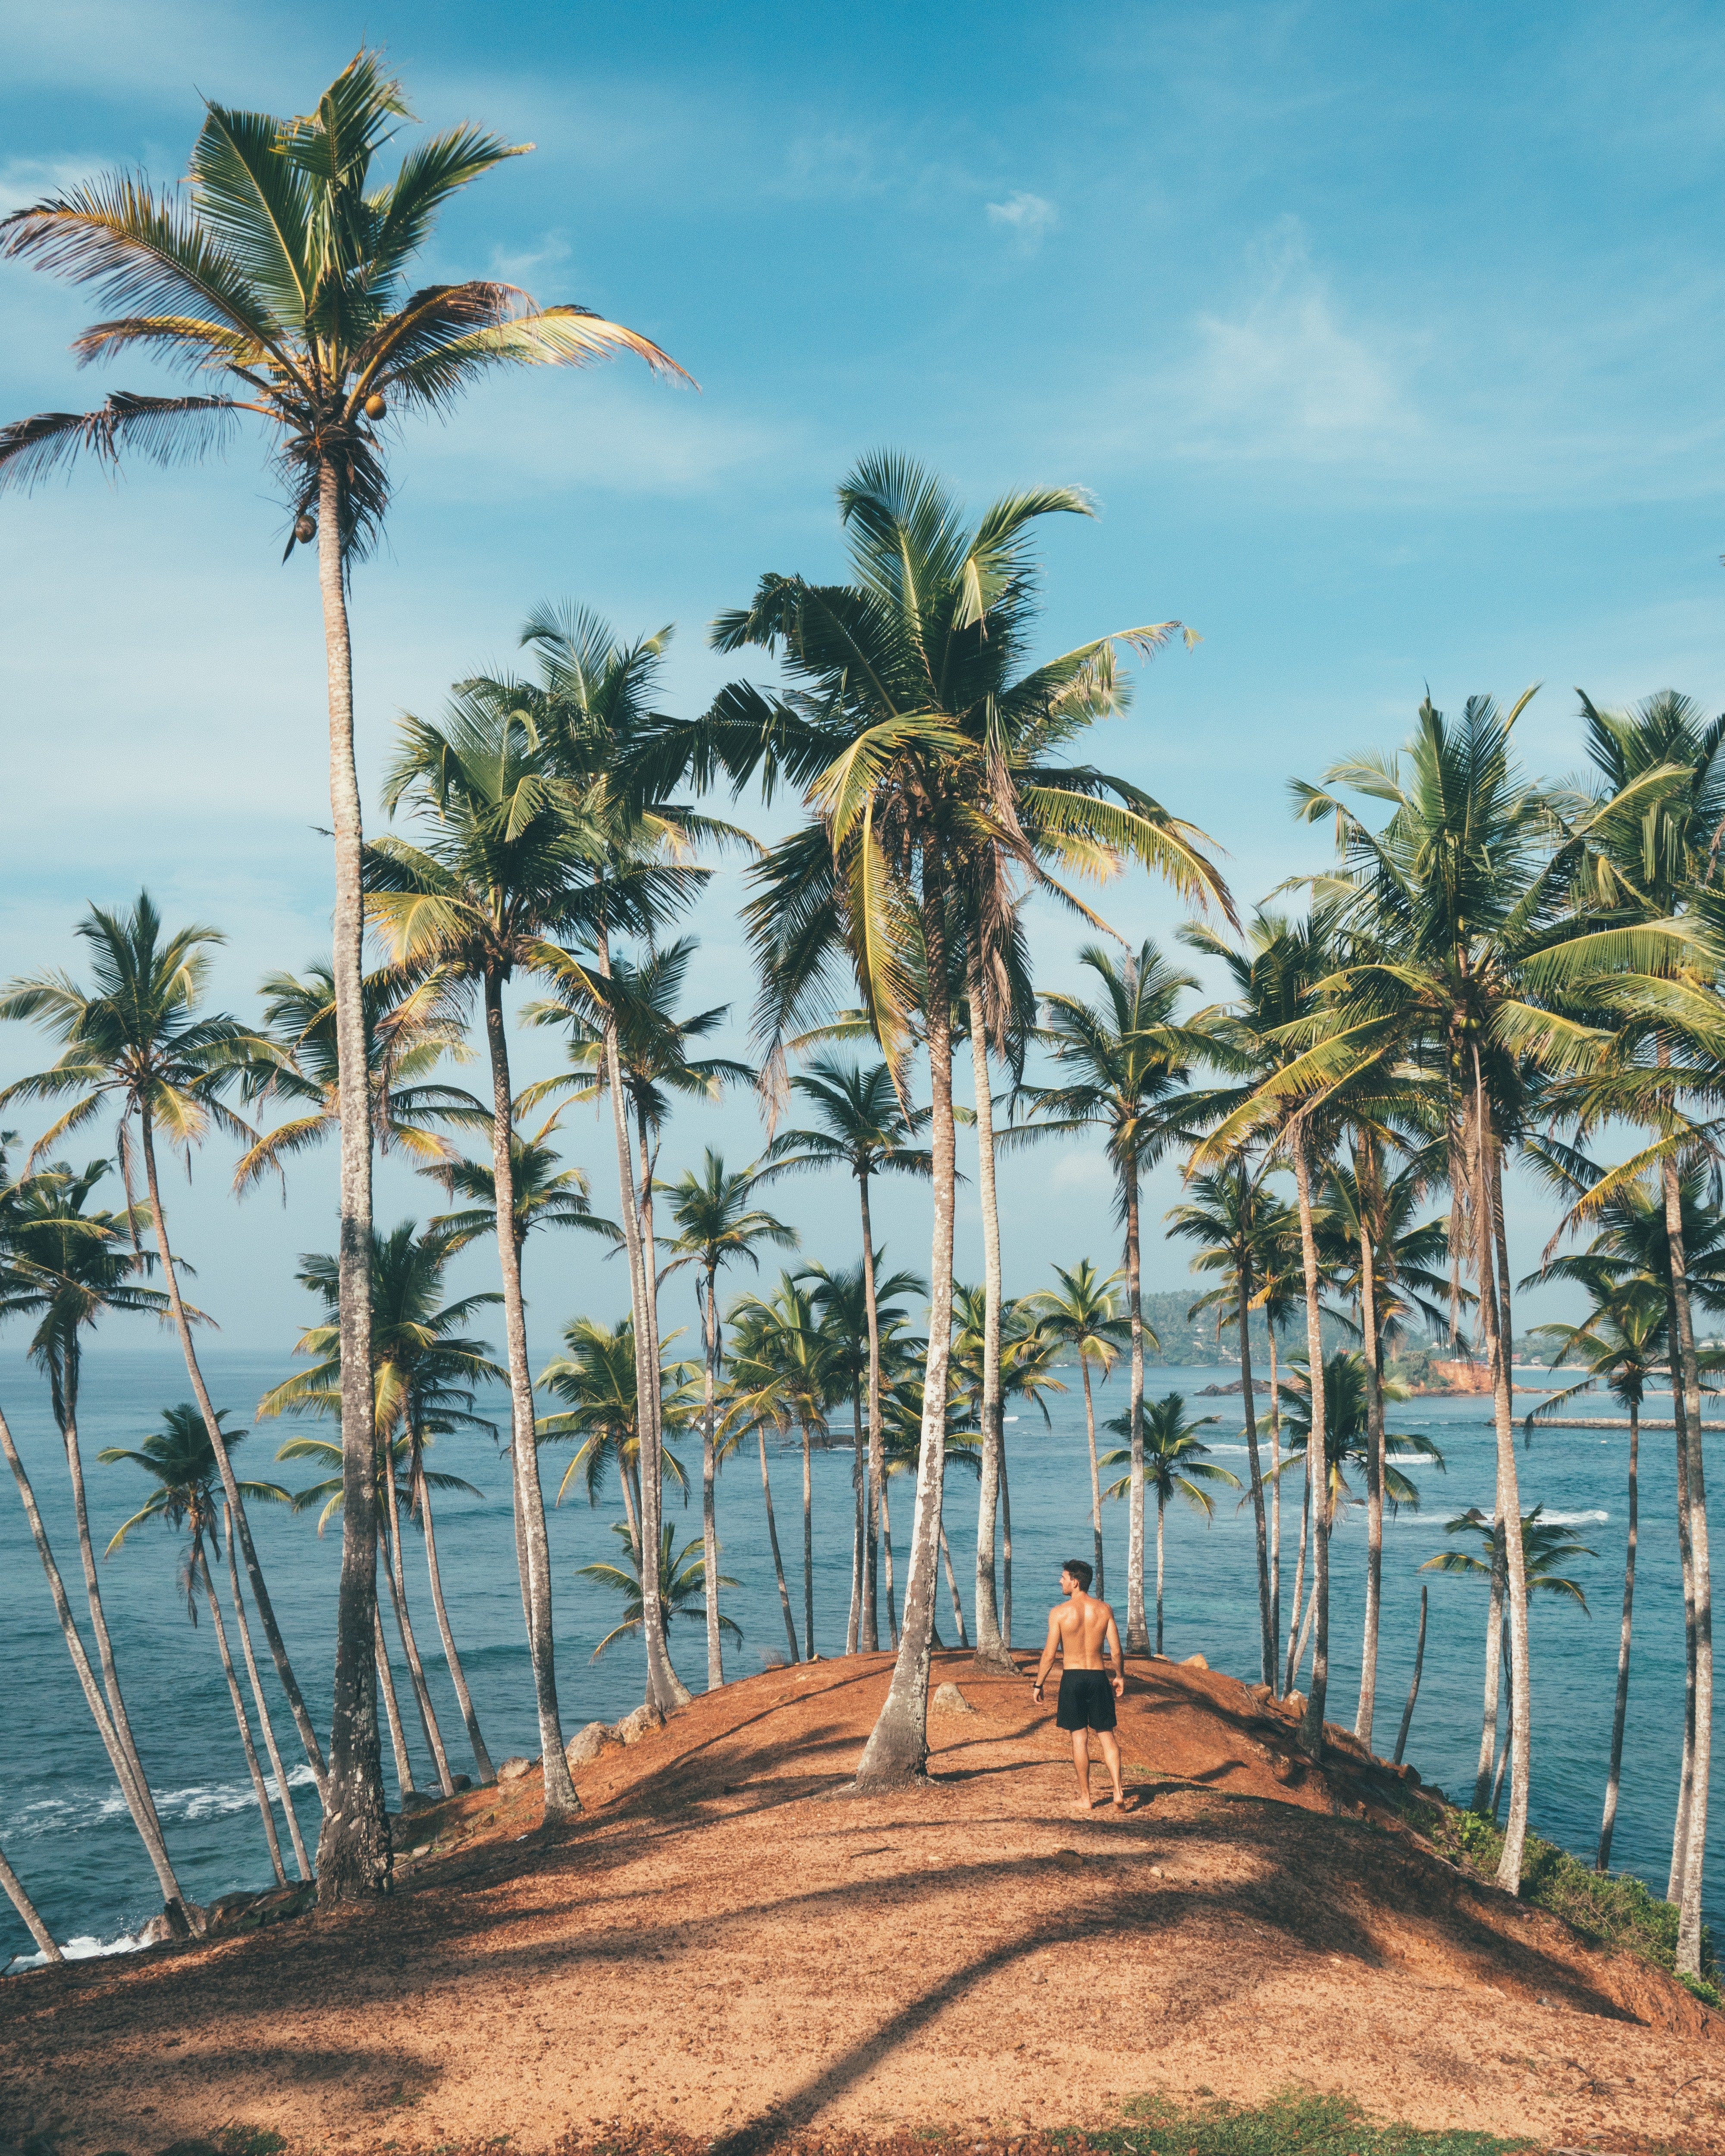 The stranded man climbed the coconut tree and his comment shocked the married couple. | Photo: Pexels